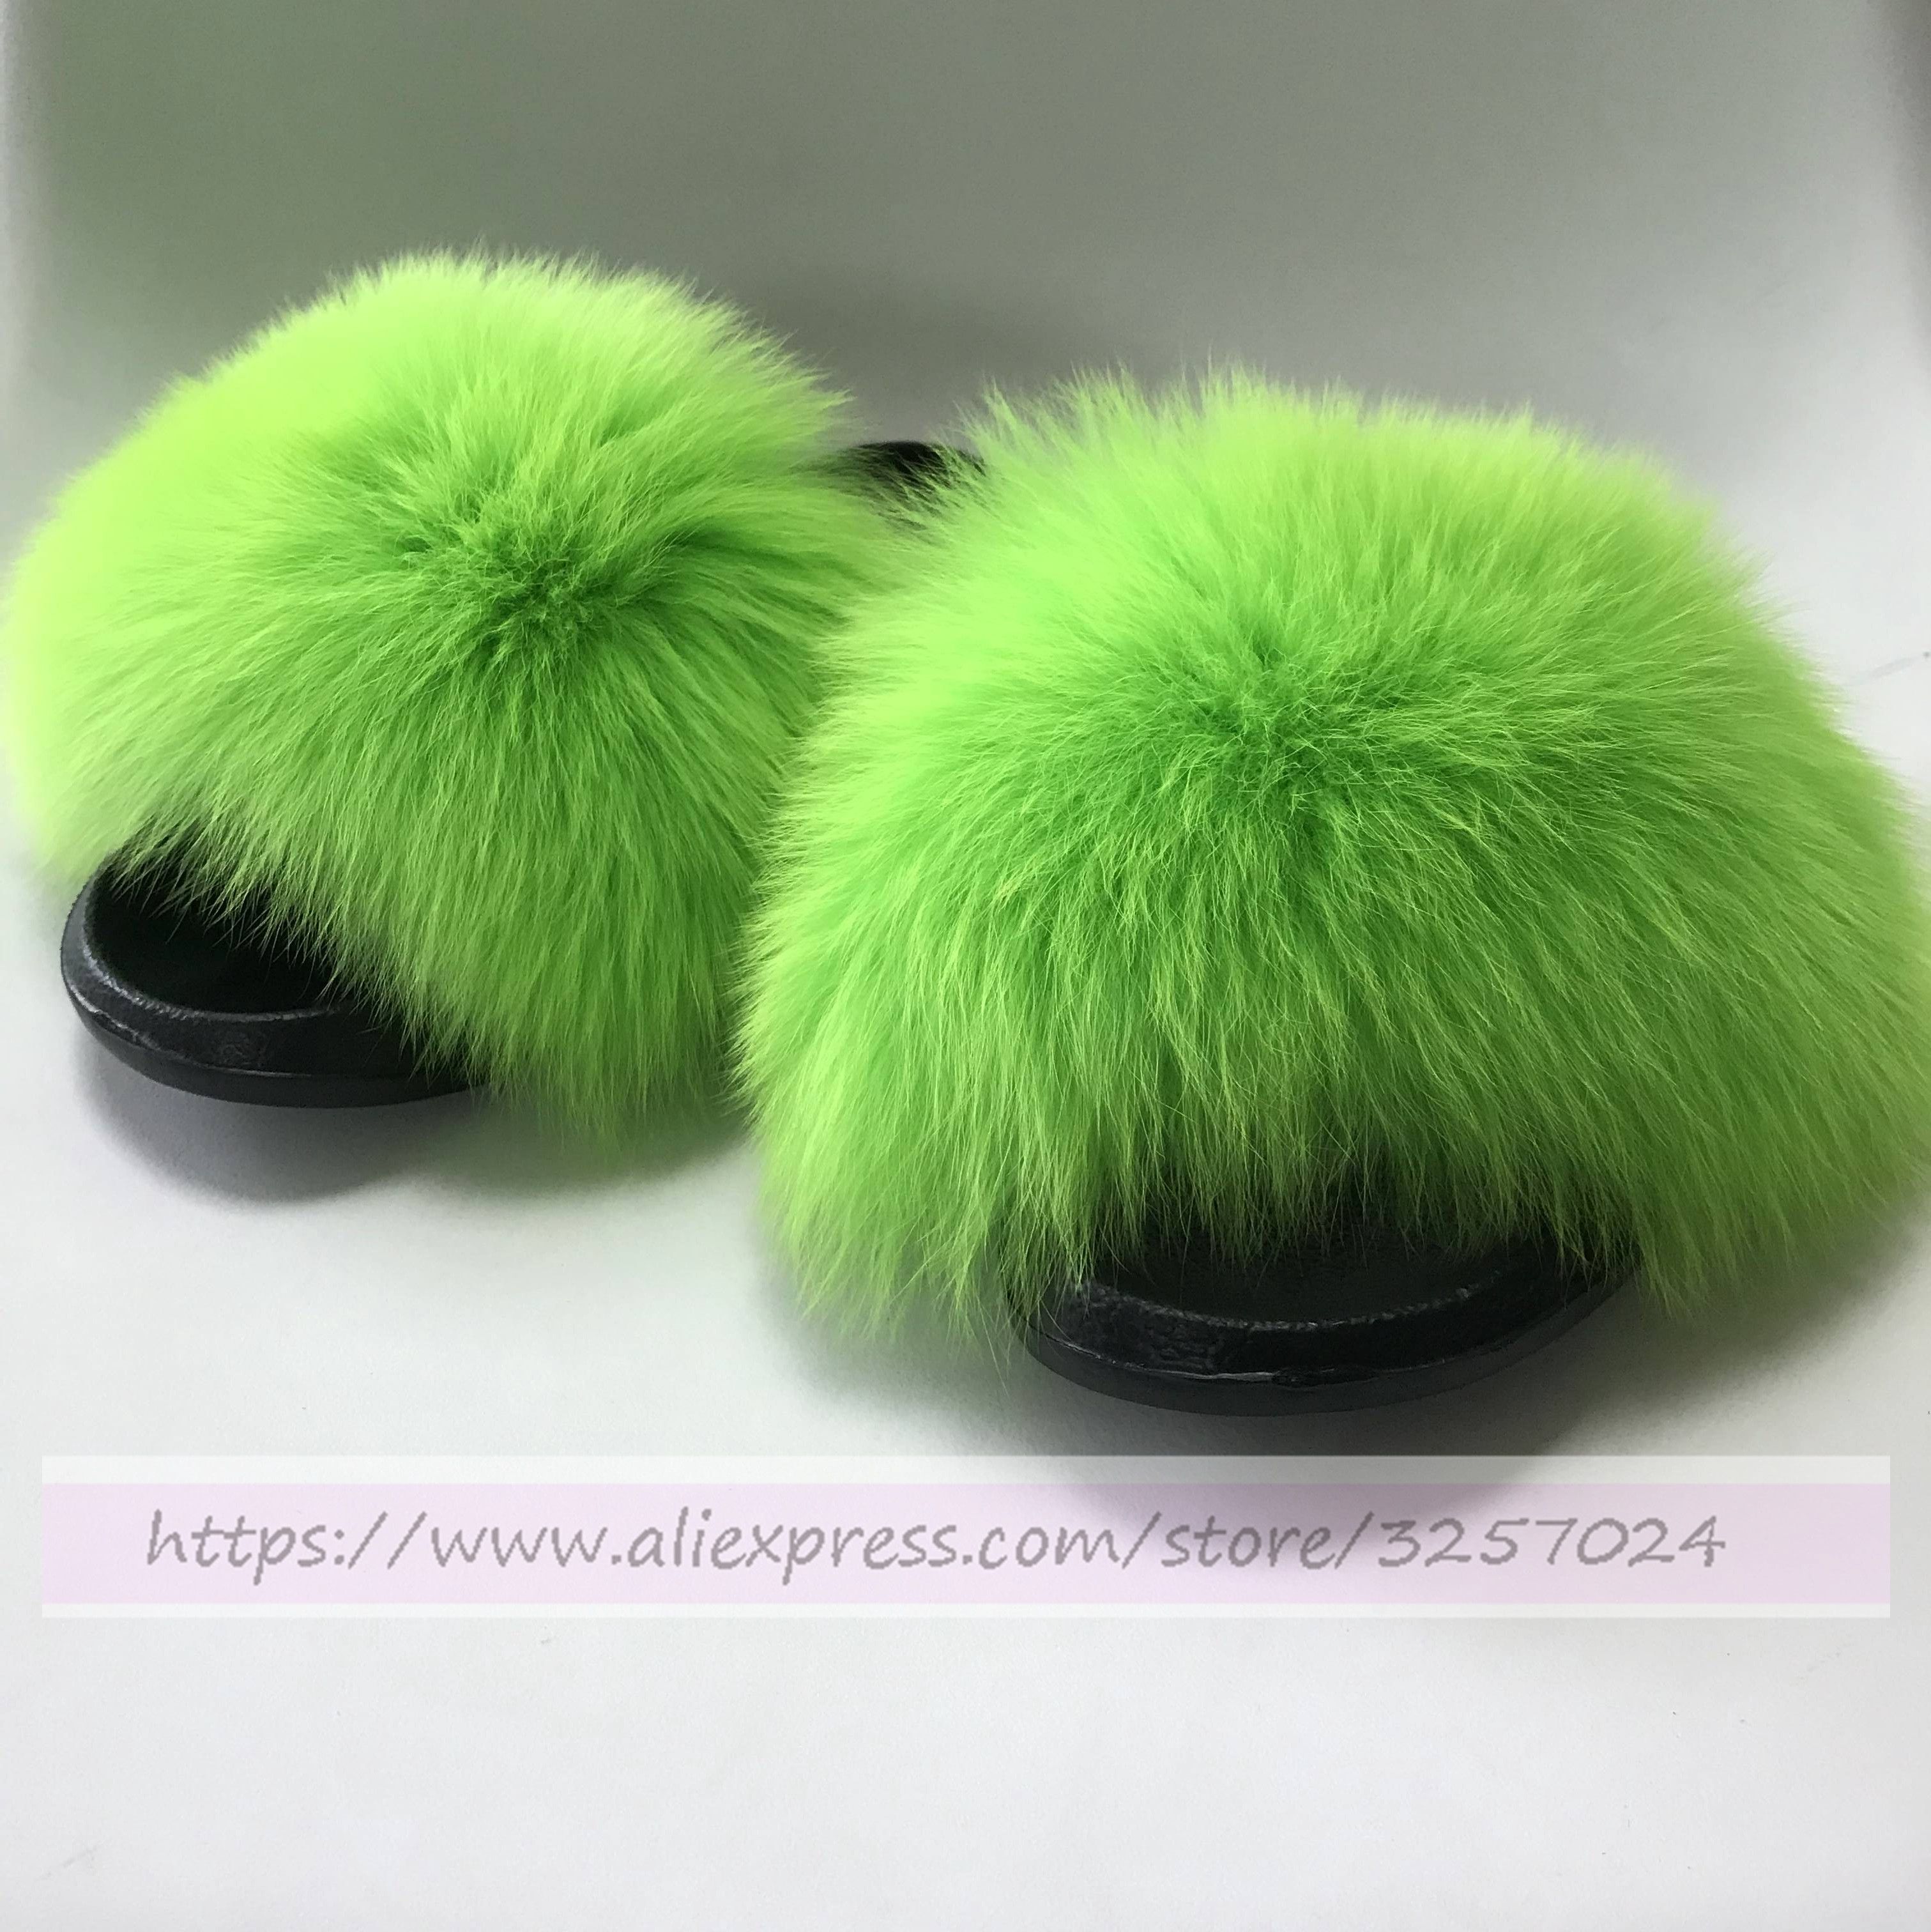 Magicfur - Dark Neon Green Real Fox fur Slipper Camel Fur Sandal Slades Outdoor Indoor Flat Slides Shoes